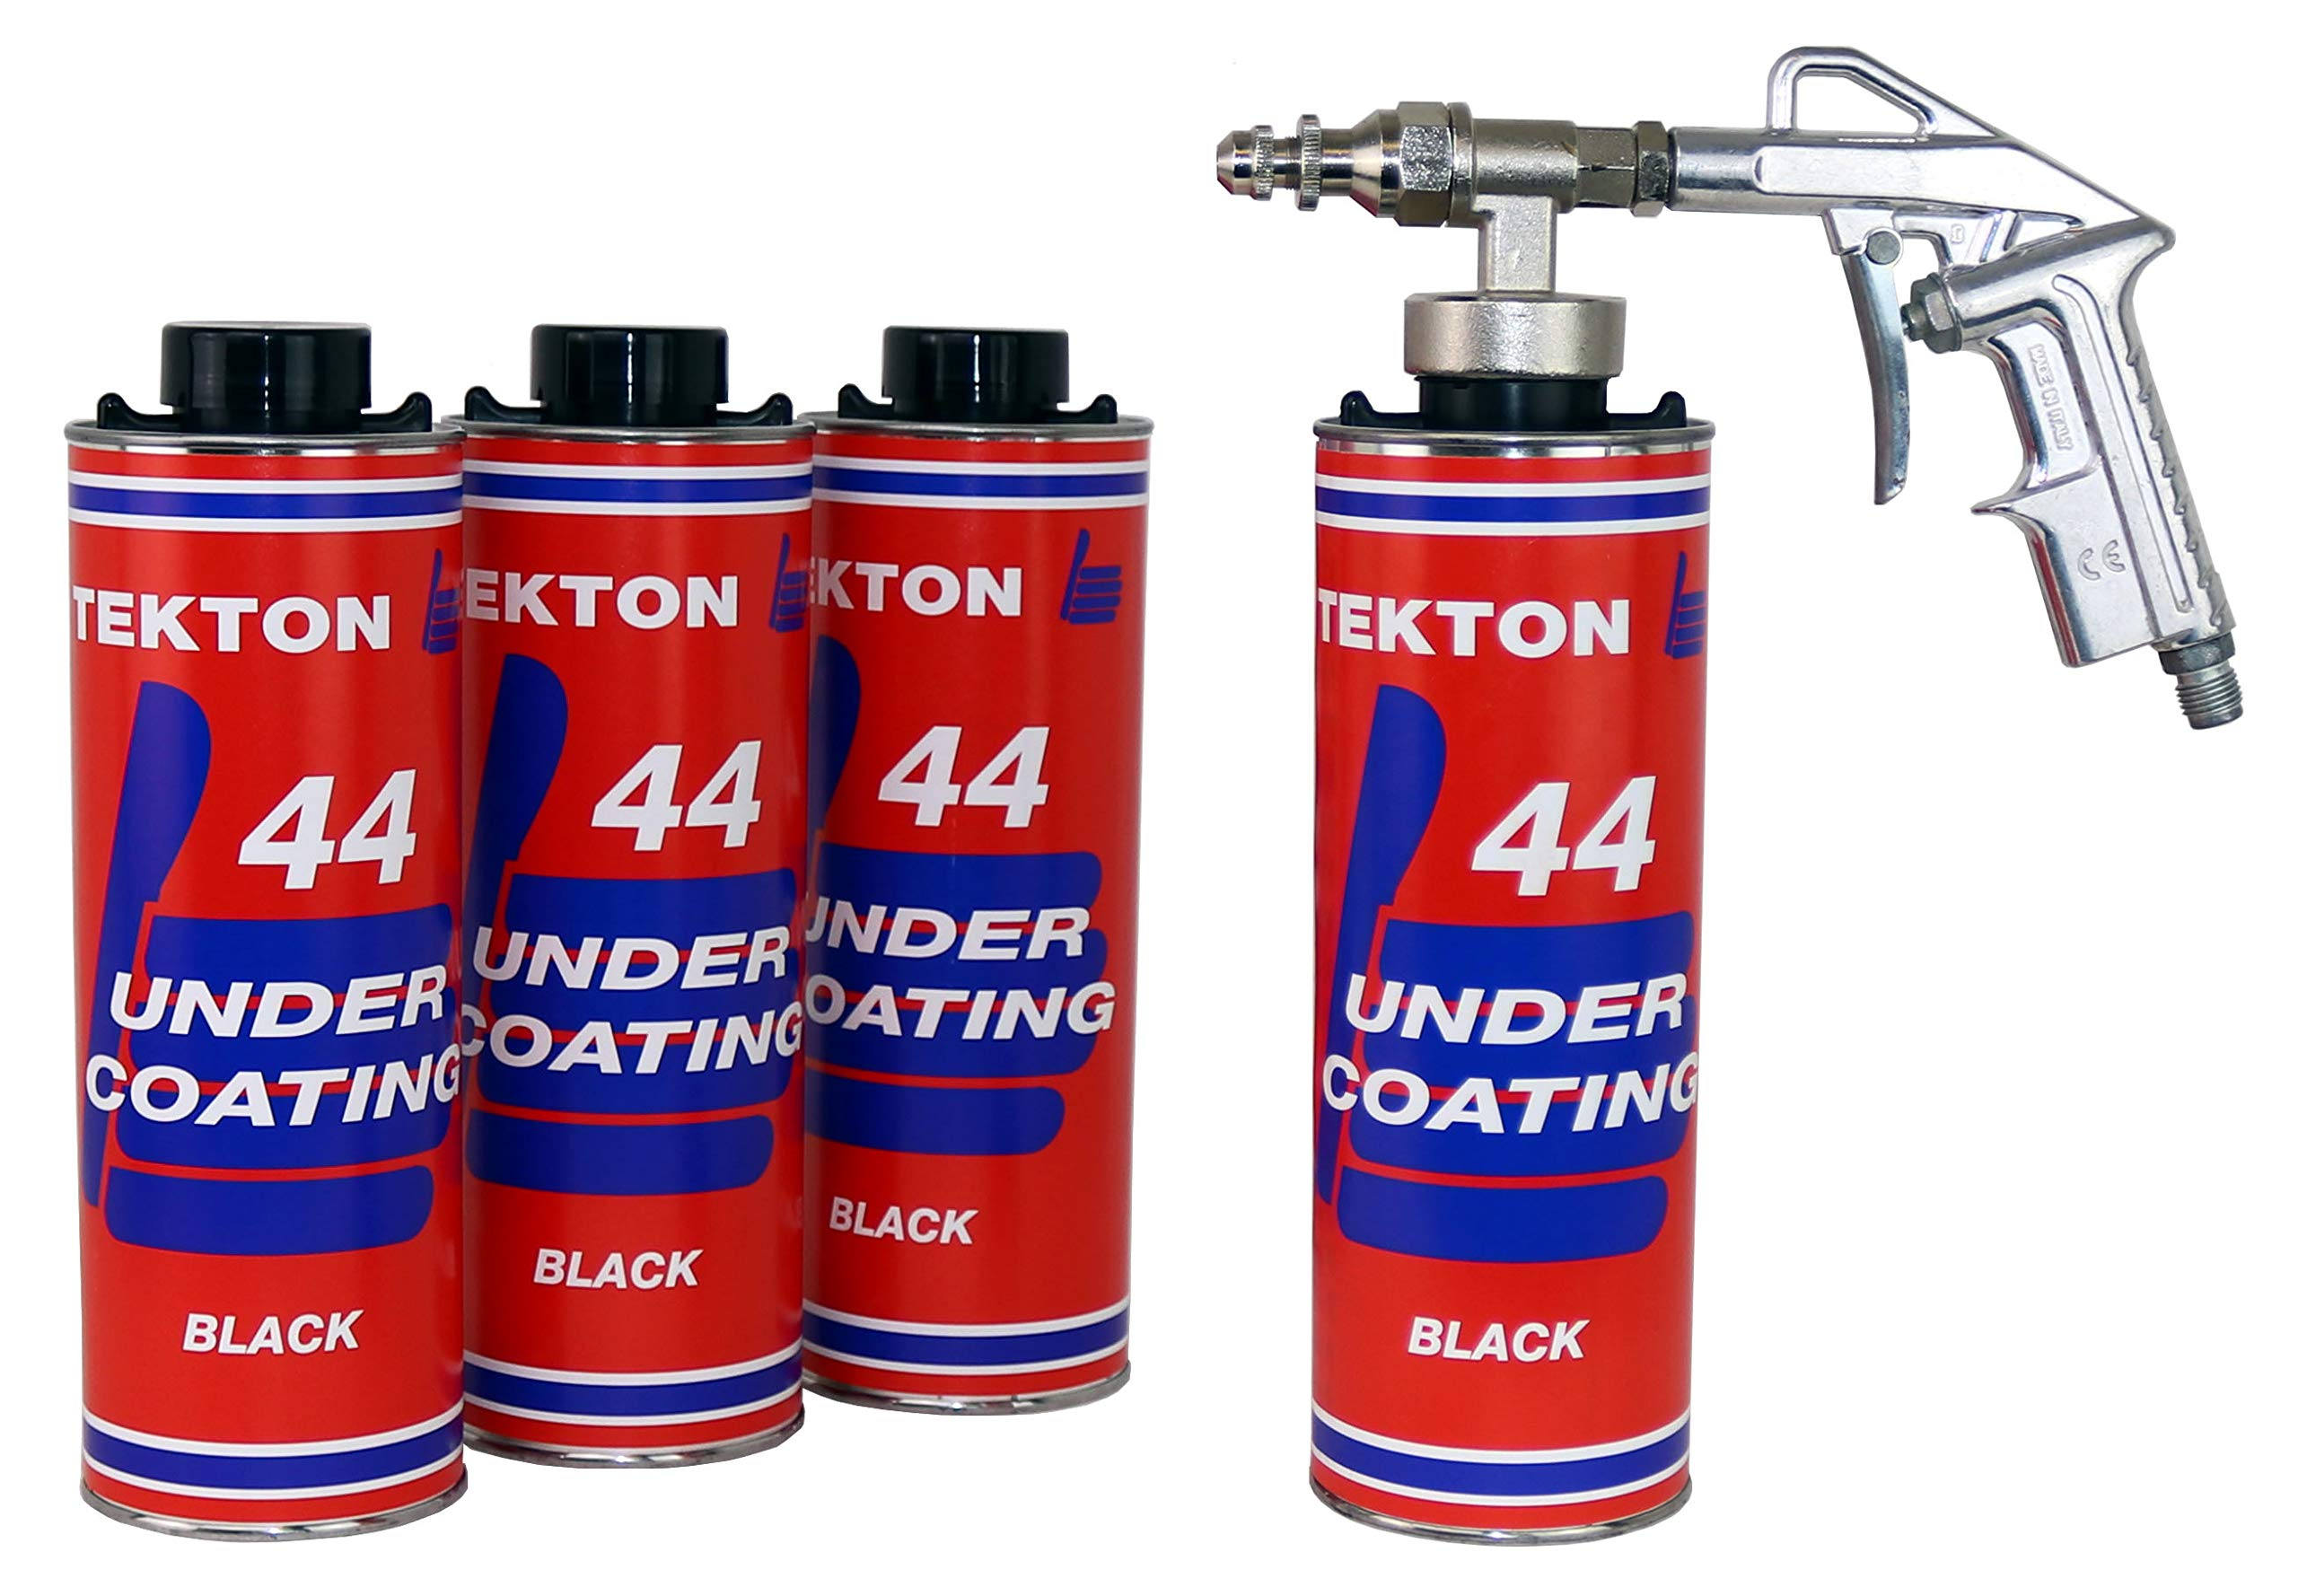 Tekton44 Undercoating for Vehicles Black Undercoating Kit Includes Spray Gun and Undercoating Wand (4)